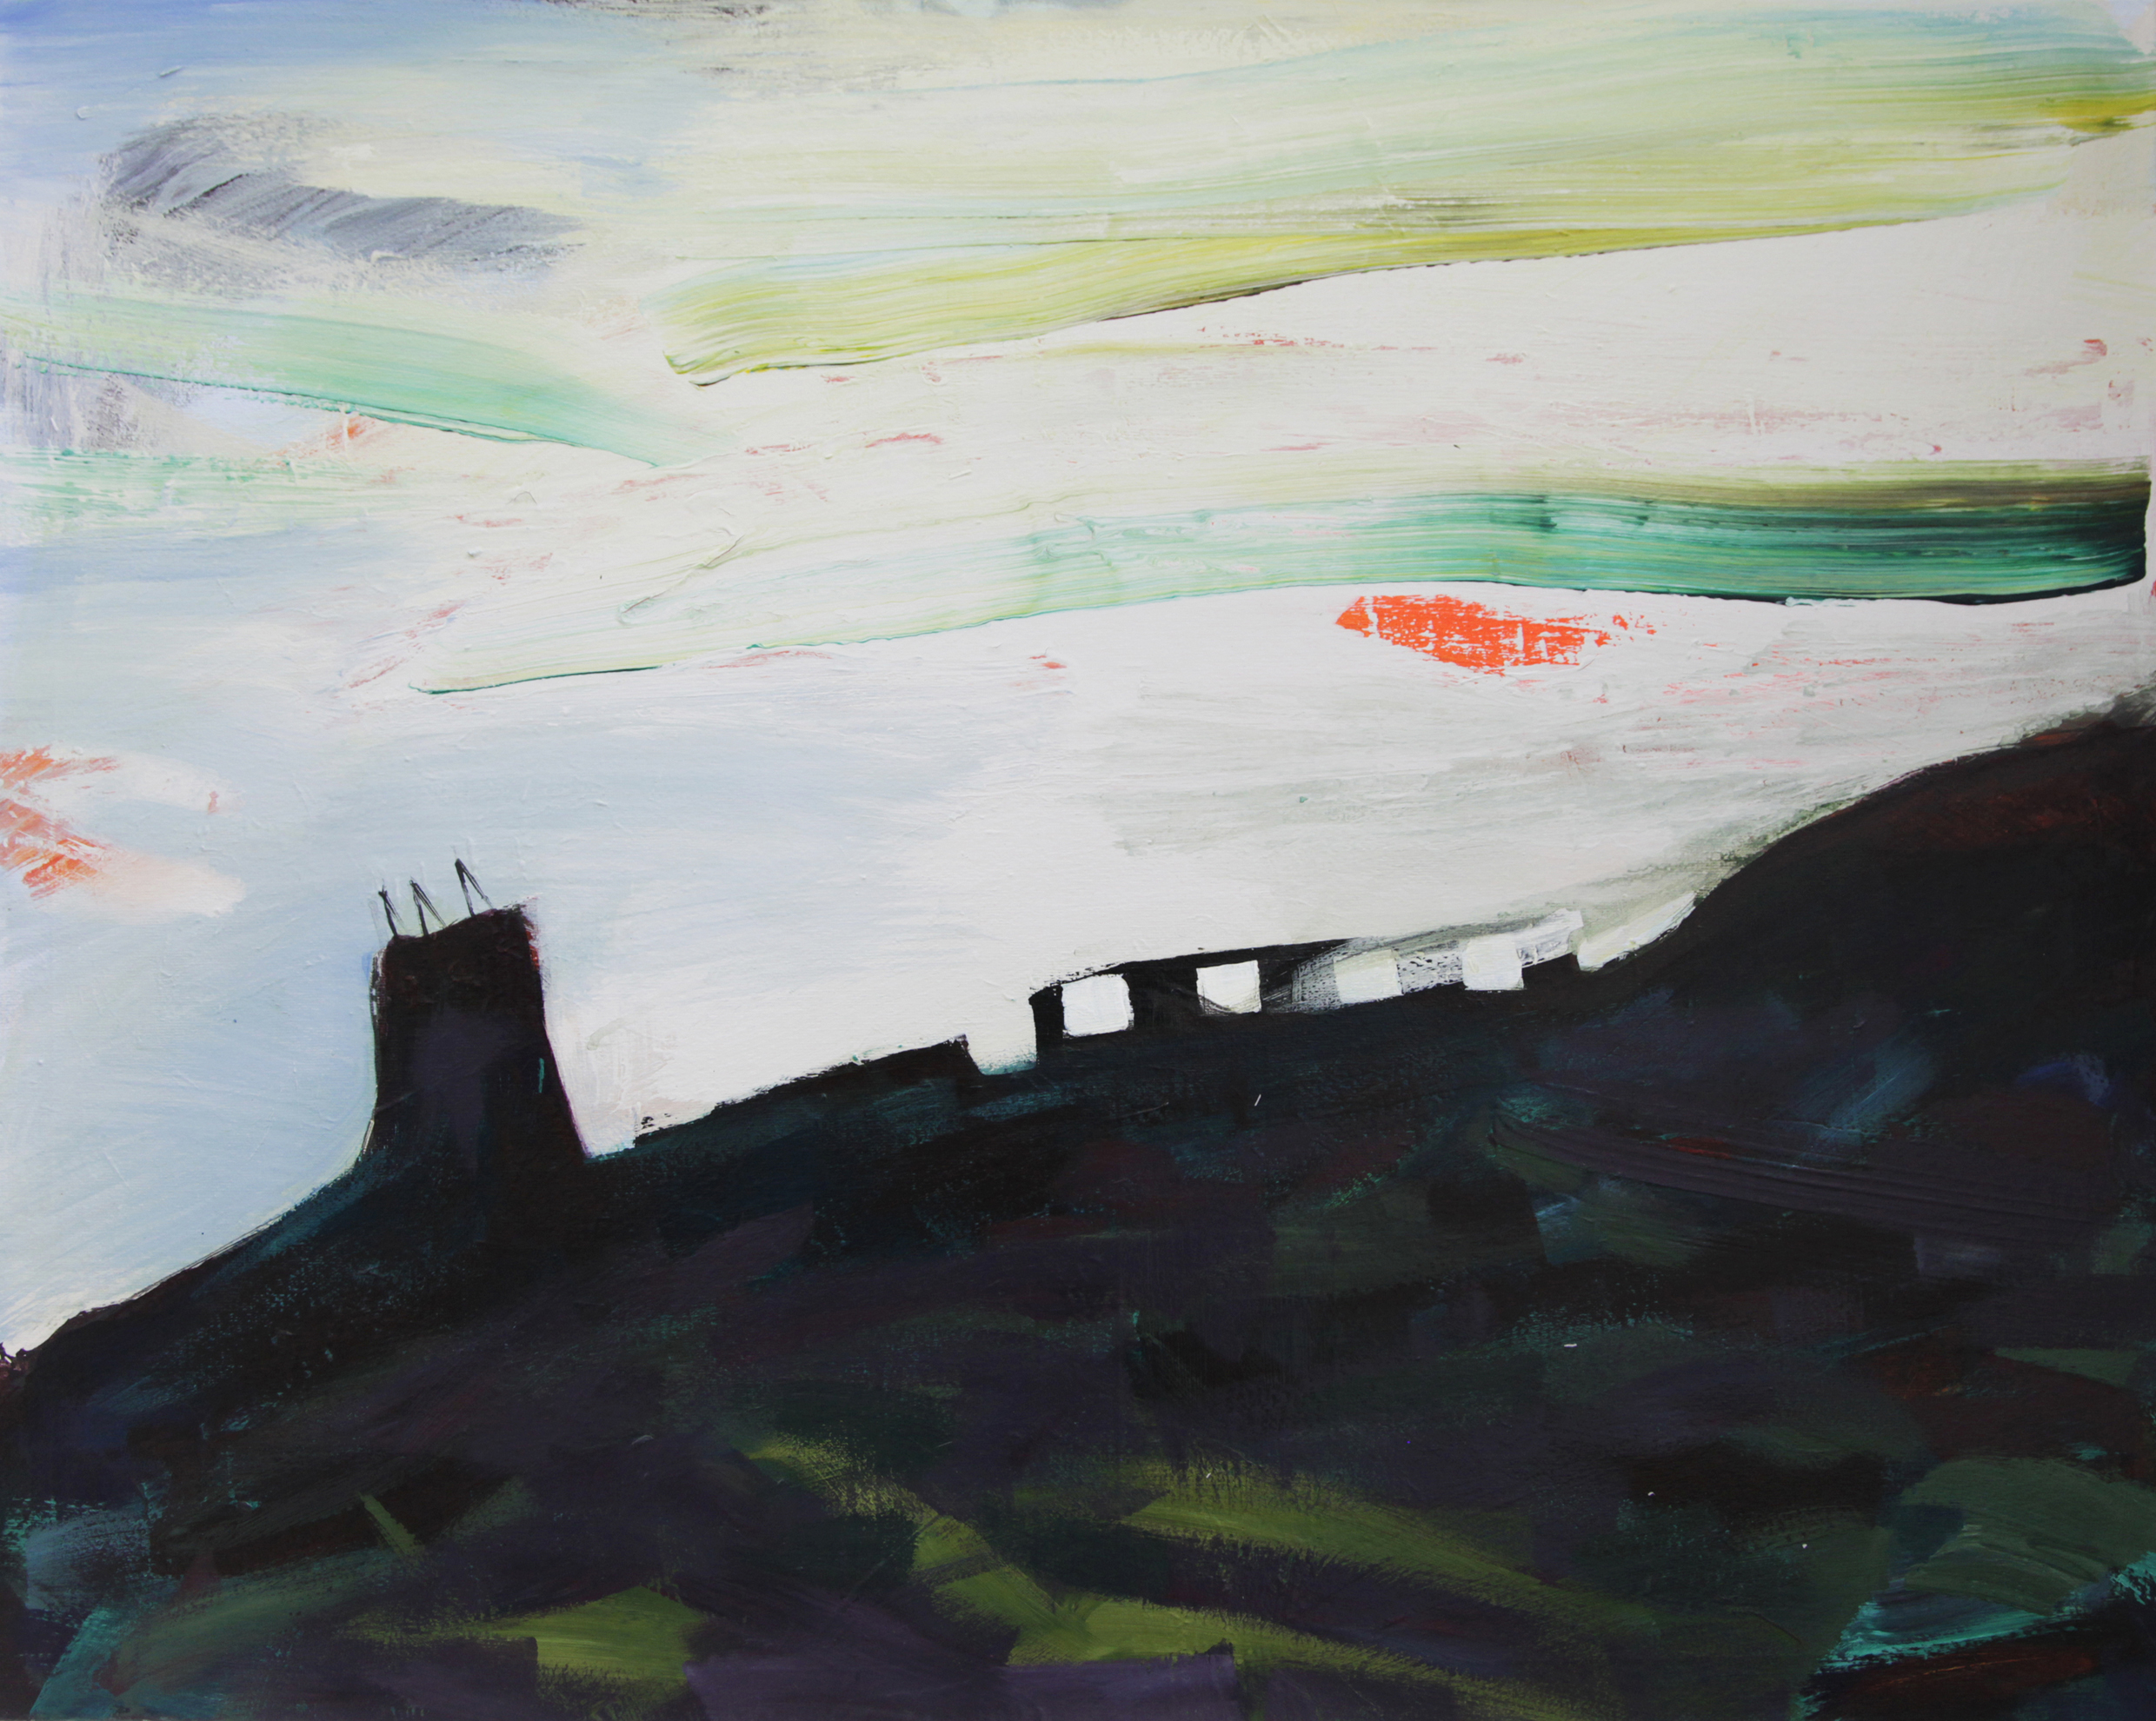 Chwarel Penmaenmawr, Jwls Williams - Oil painting and videoAdded by: Jwls Williams, 2016